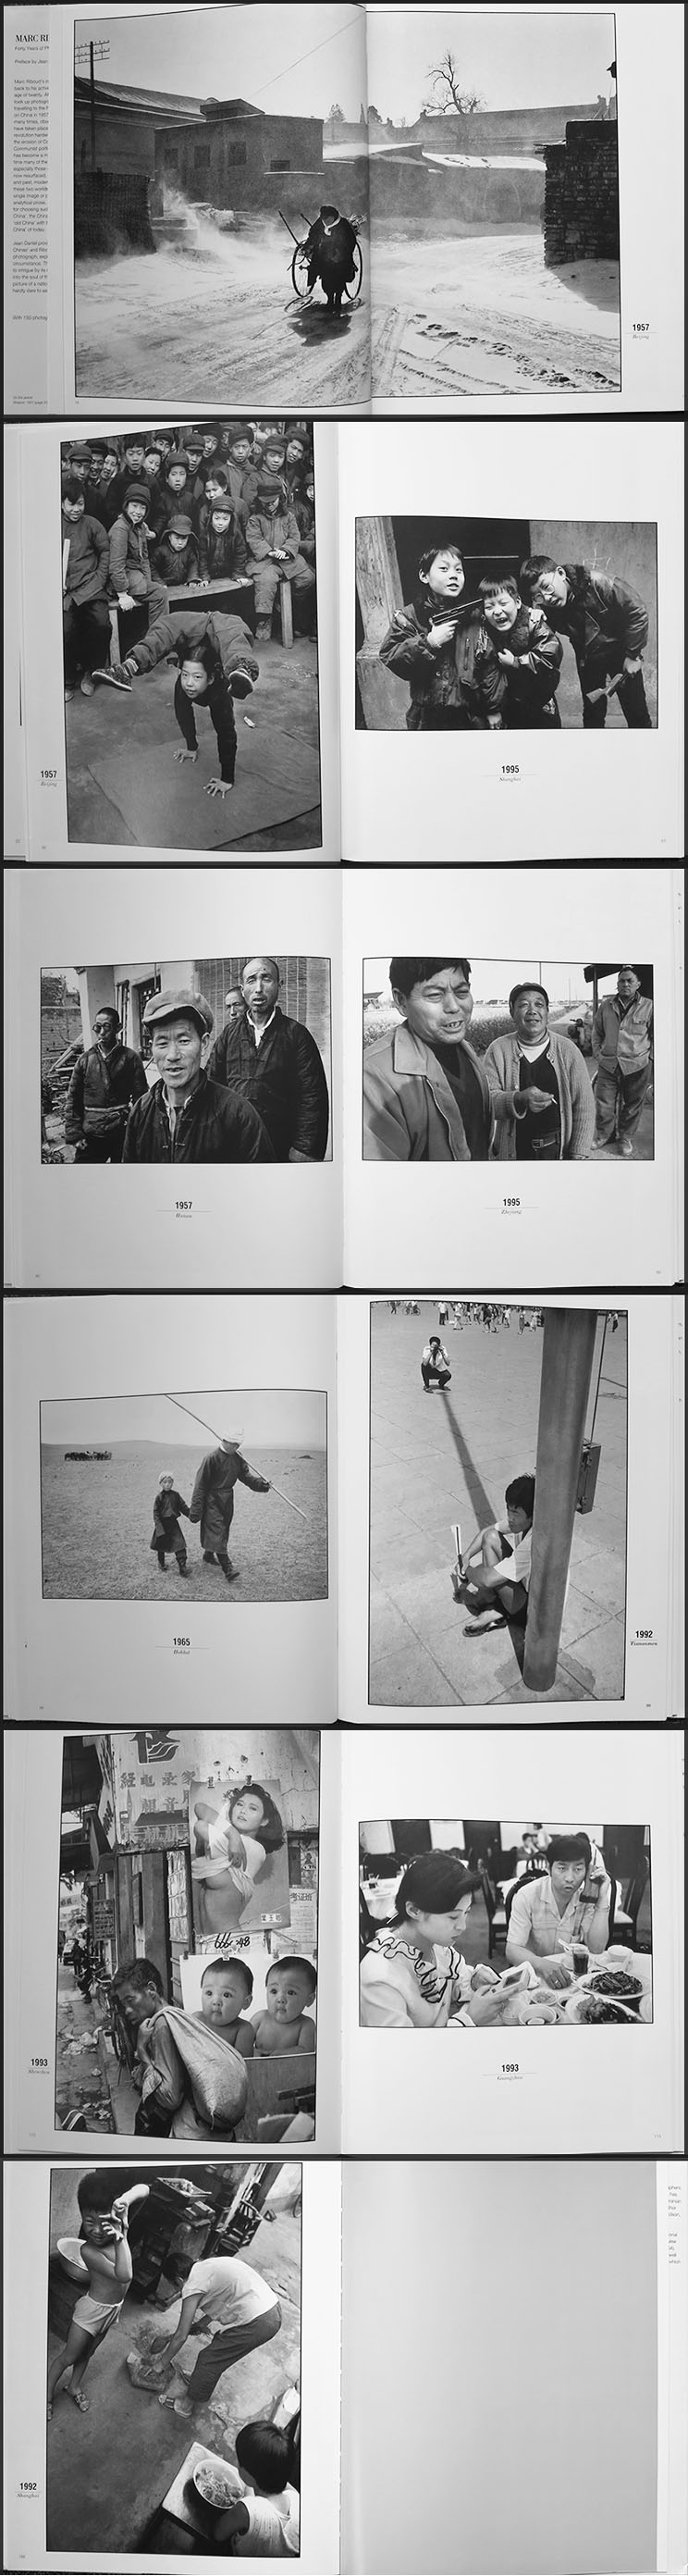 Marc Riboud, In China - photography